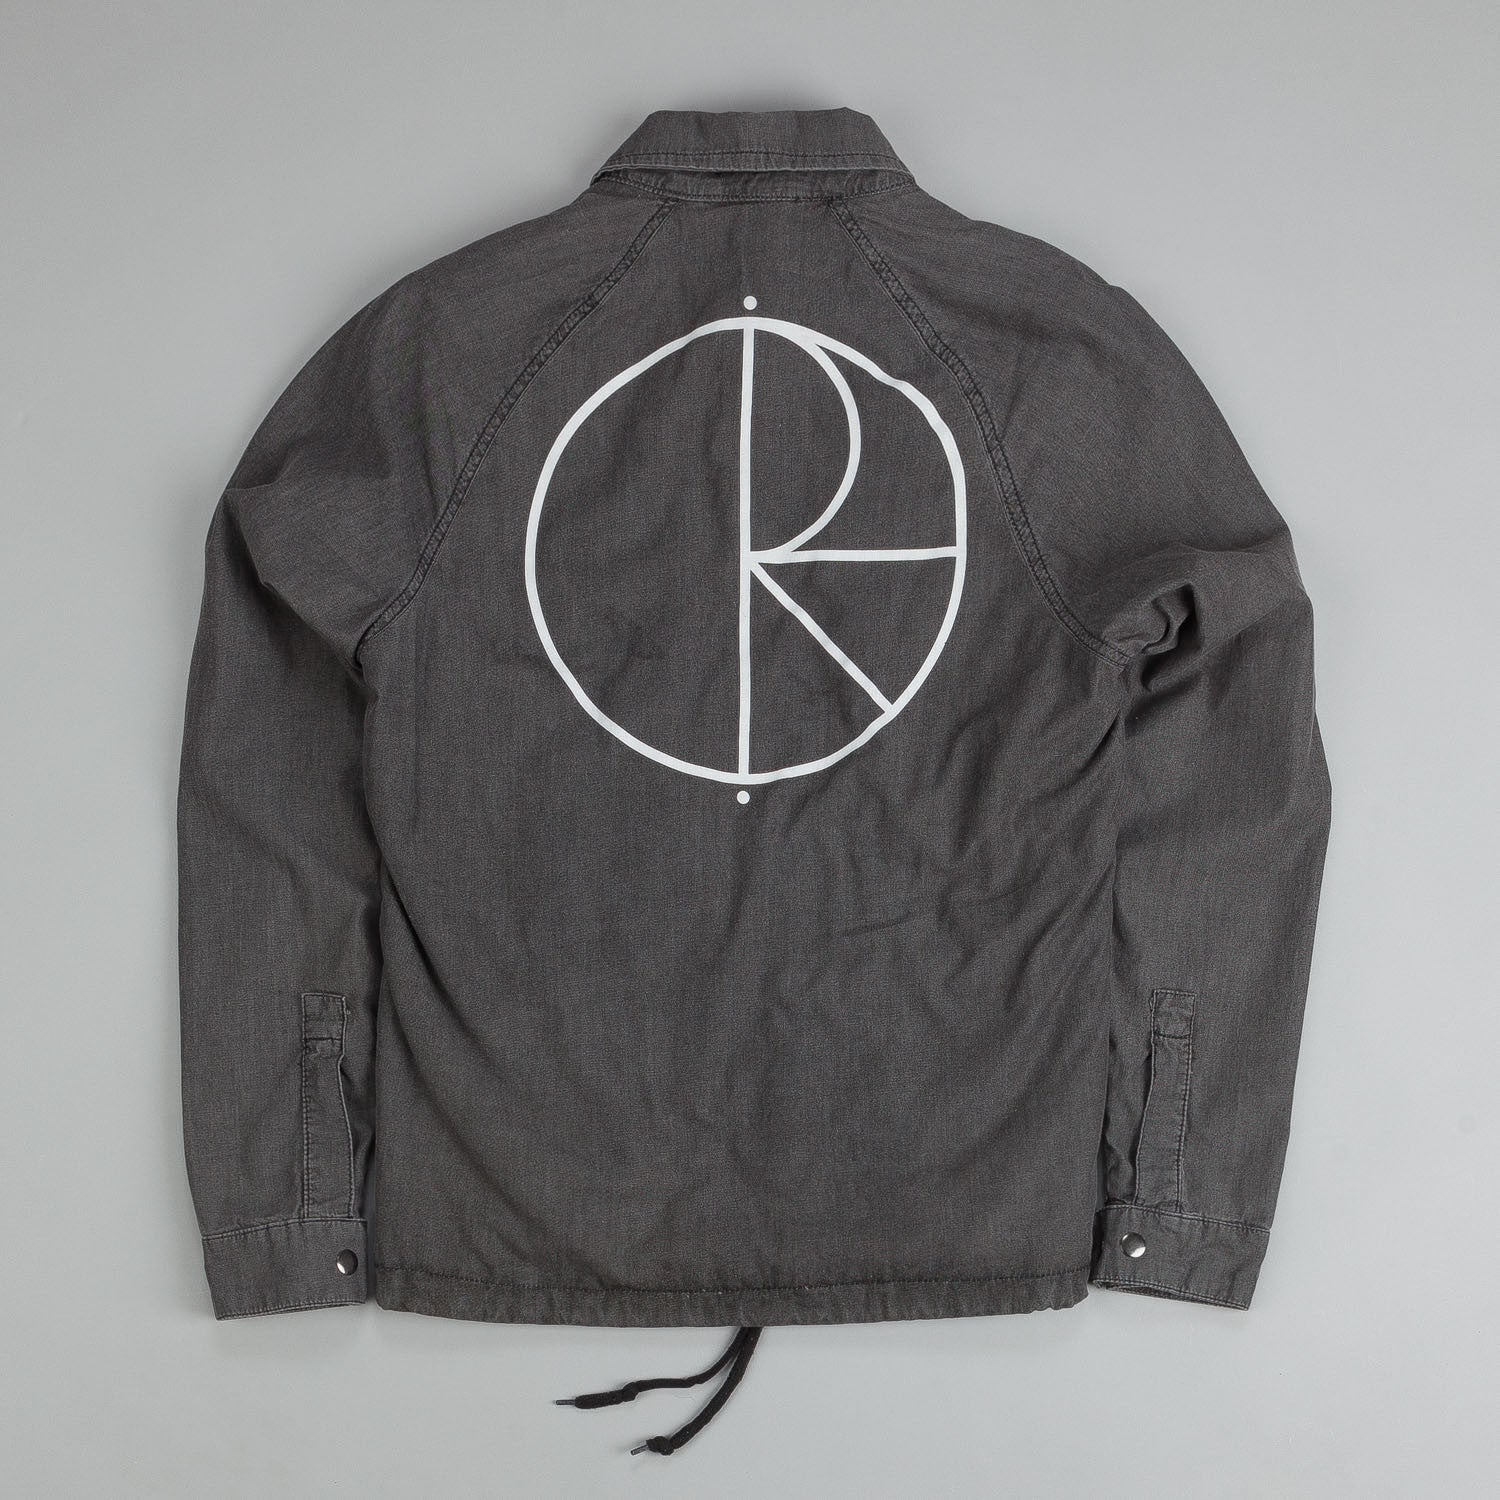 Polar Denim Coach Jacket Black / White Stroke Logo